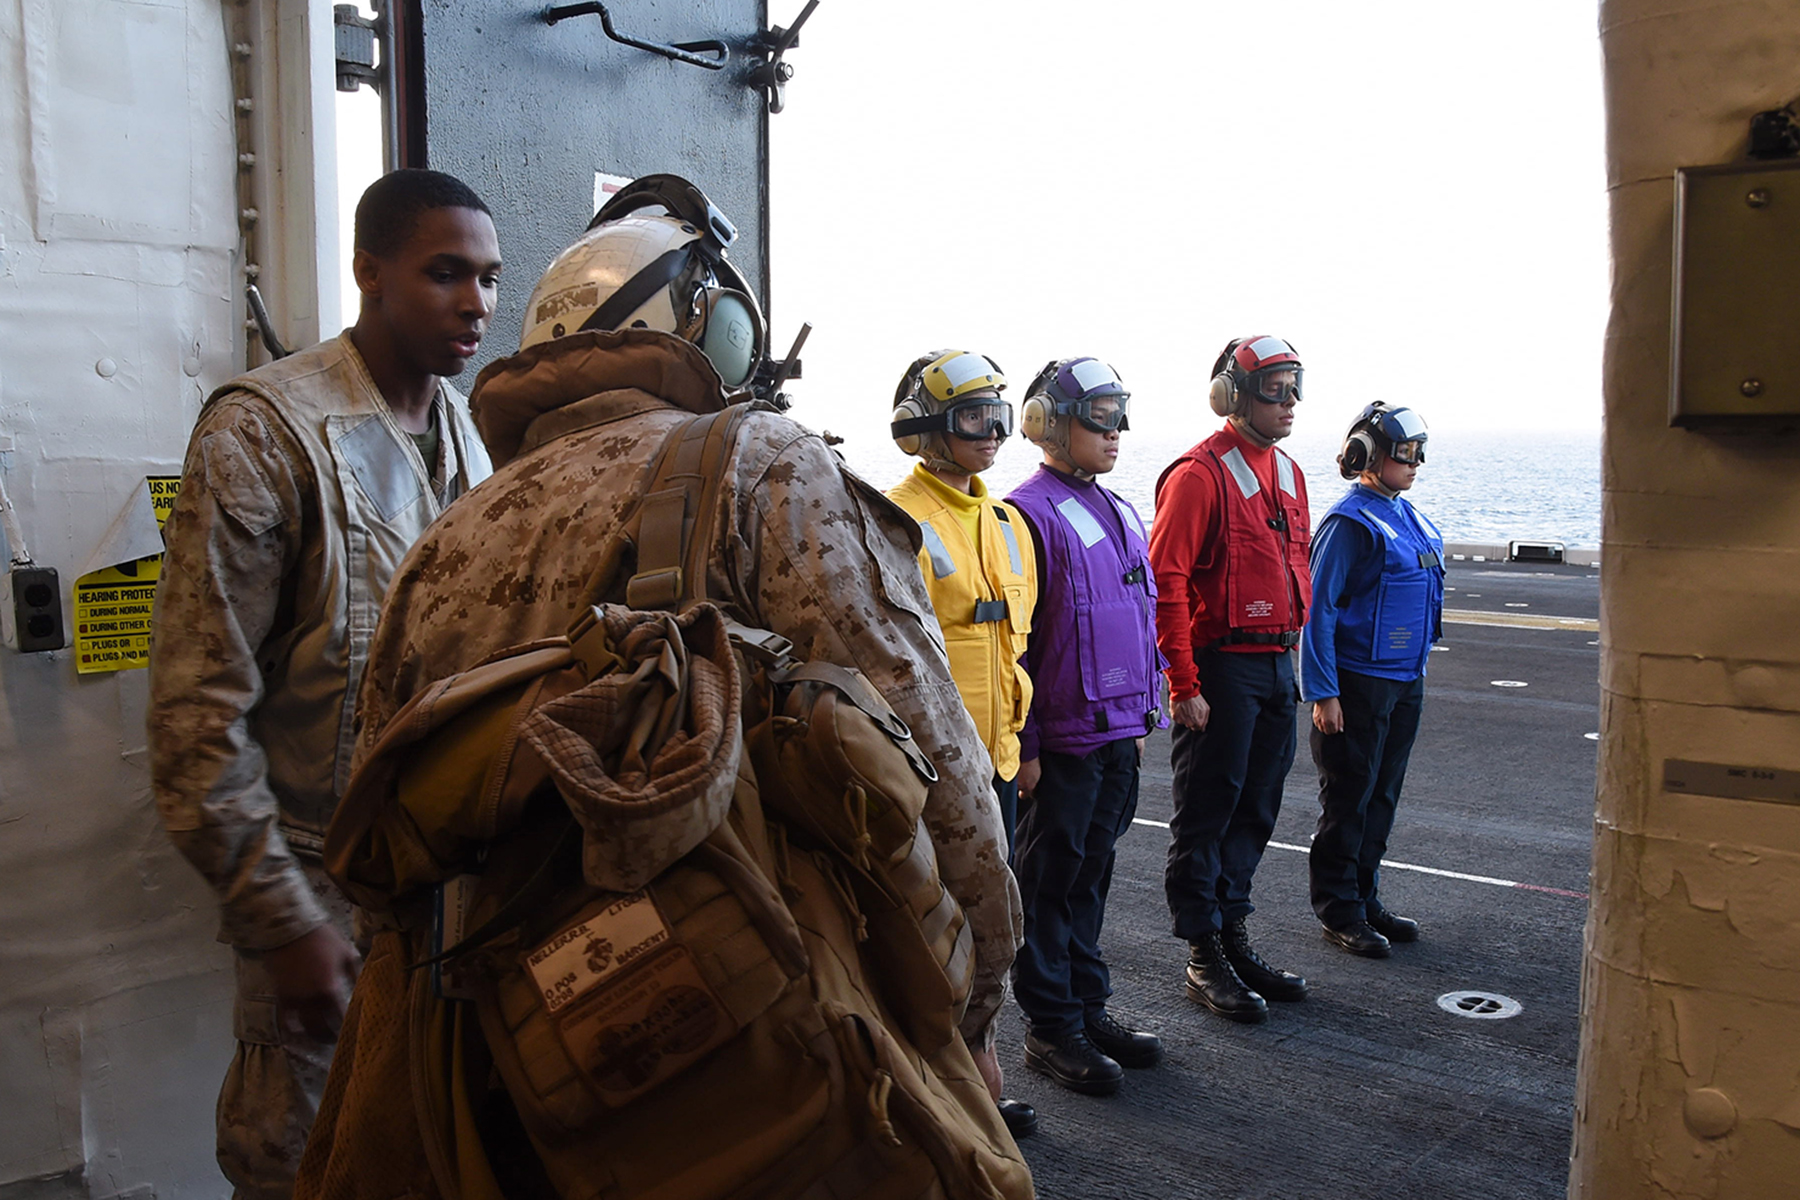 U.S. Marine Corps Gen. Robert B. Neller, 37th Commandant of the Marine Corps, prepares to depart from the flight deck of the amphibious assault ship USS Makin Island (LHD 8), in the Gulf of Aden, Dec. 23, 2016. Sailors involved in flight deck operations wear color-coded apparel that identifies their specialization. (U.S. Air National Guard photo by Staff Sgt. Penny Snoozy)